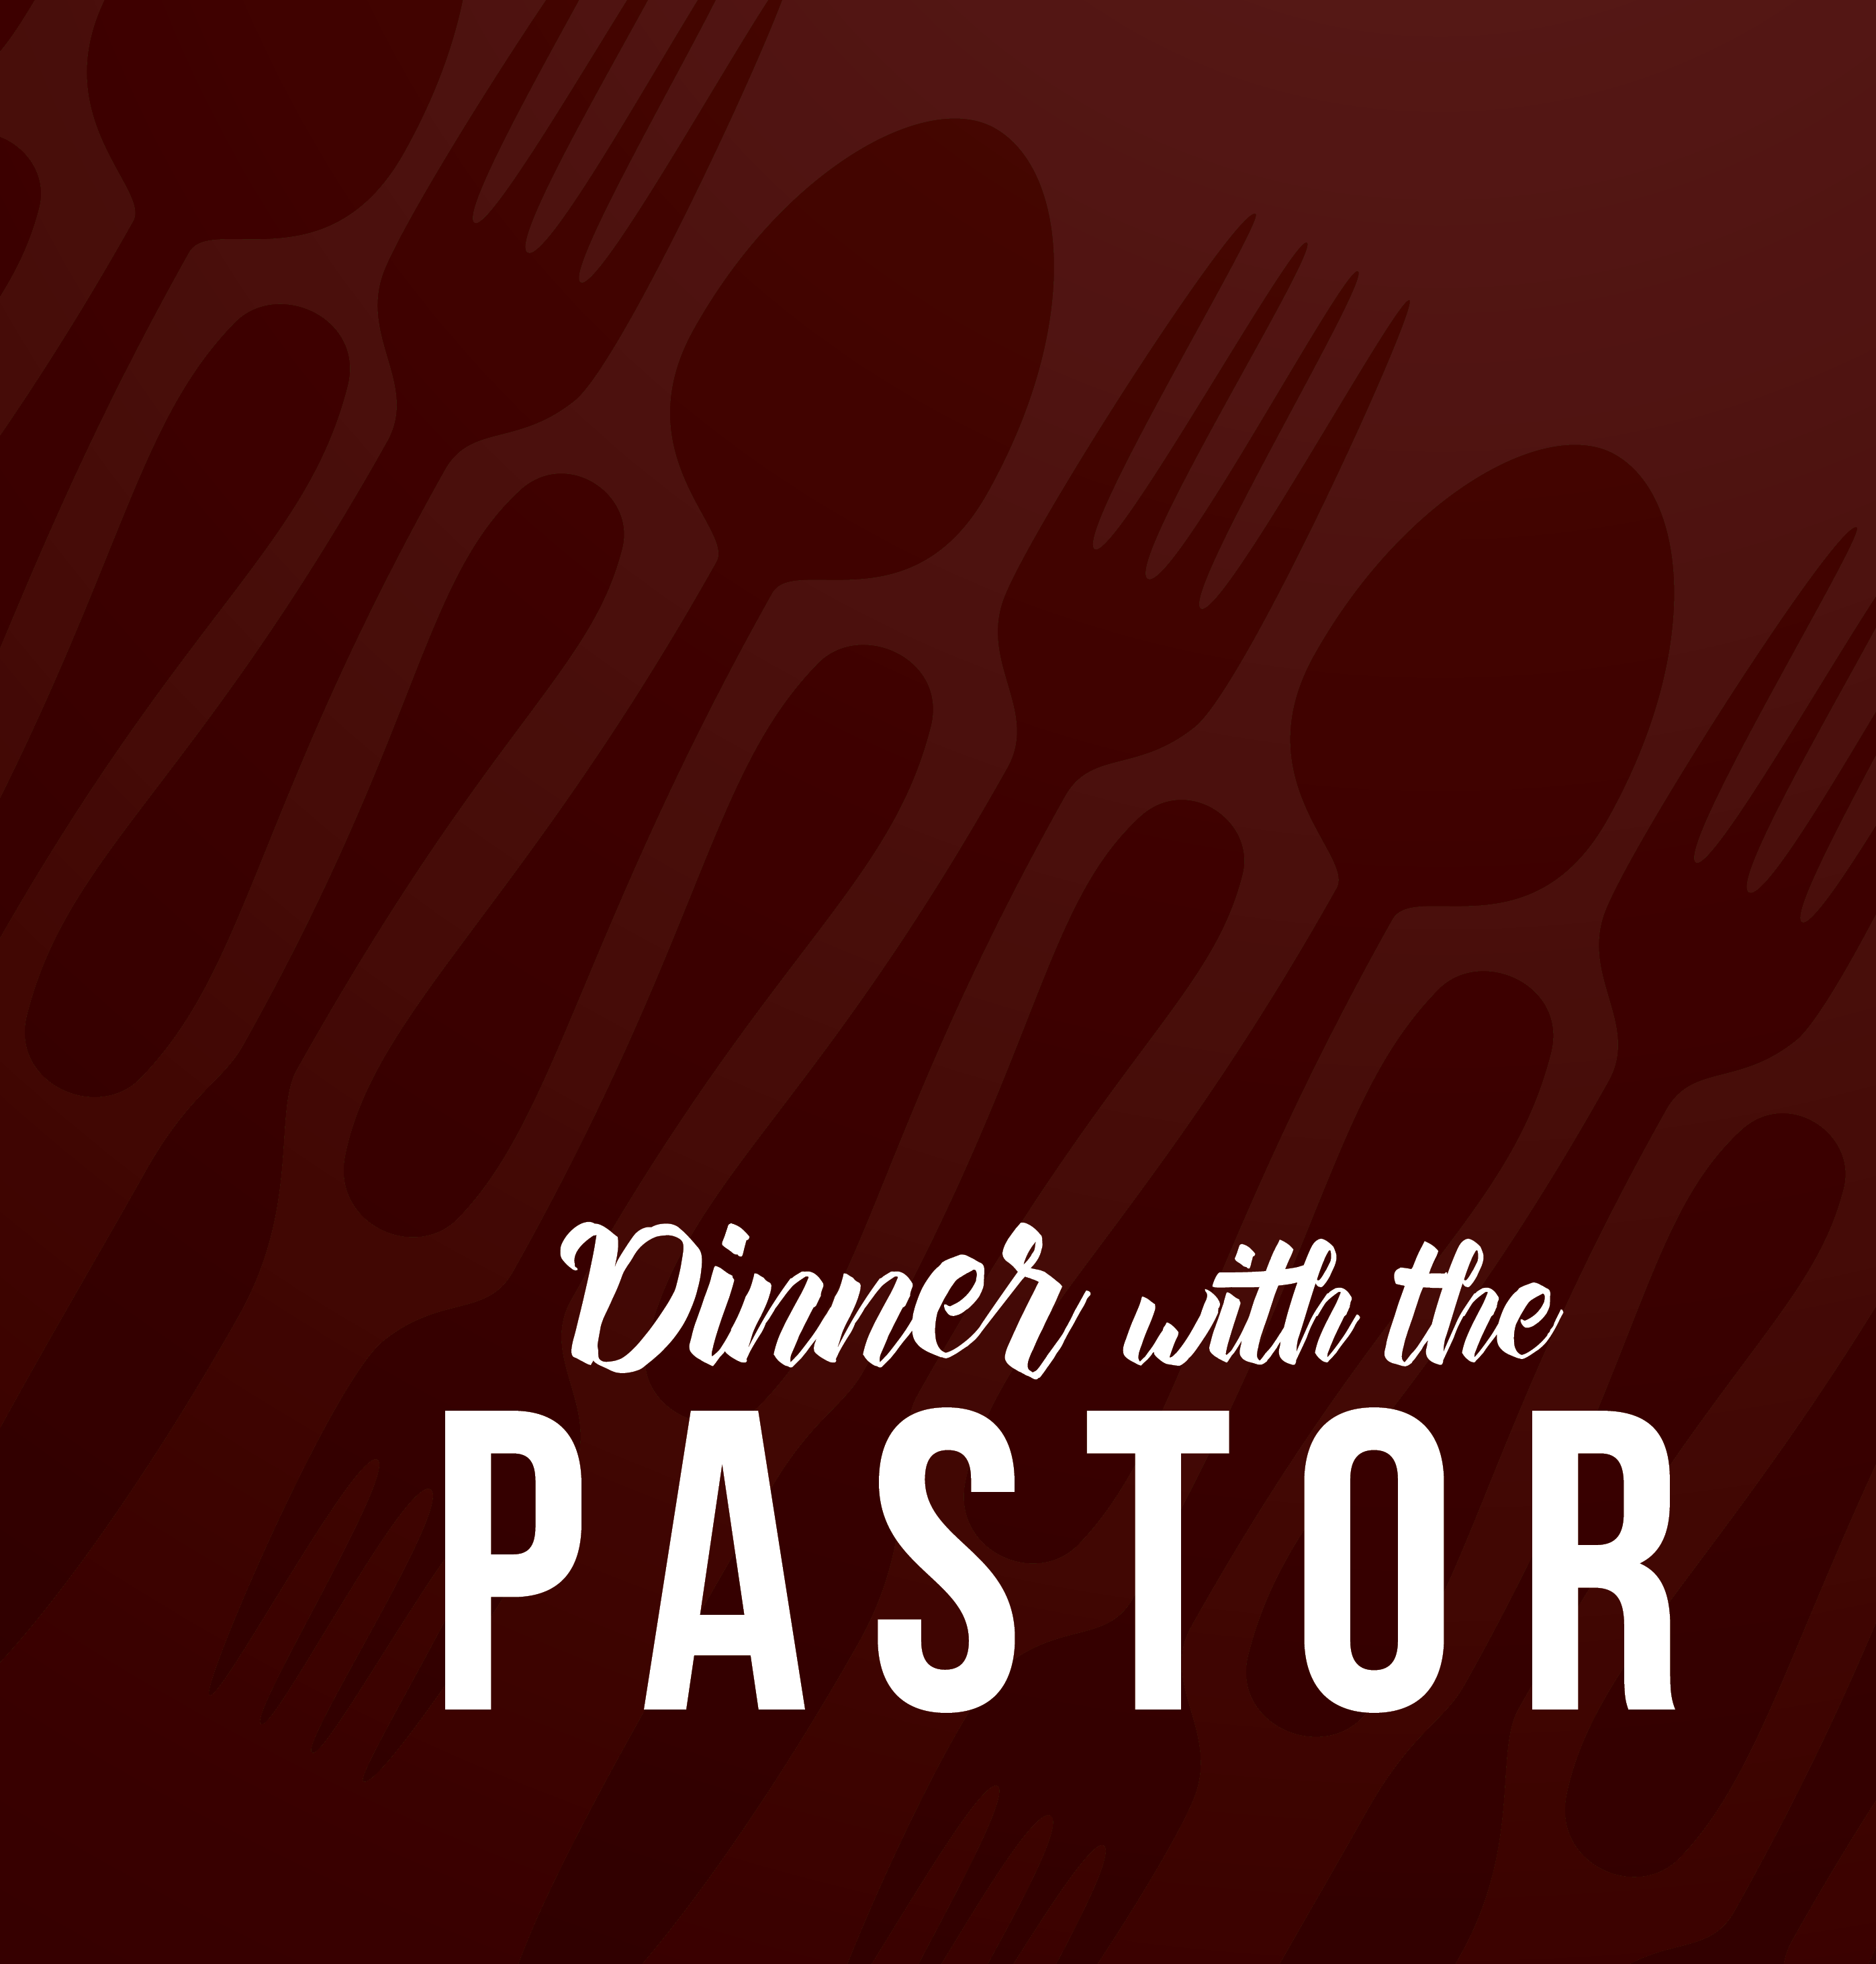 belong through Dinner with the Pastor